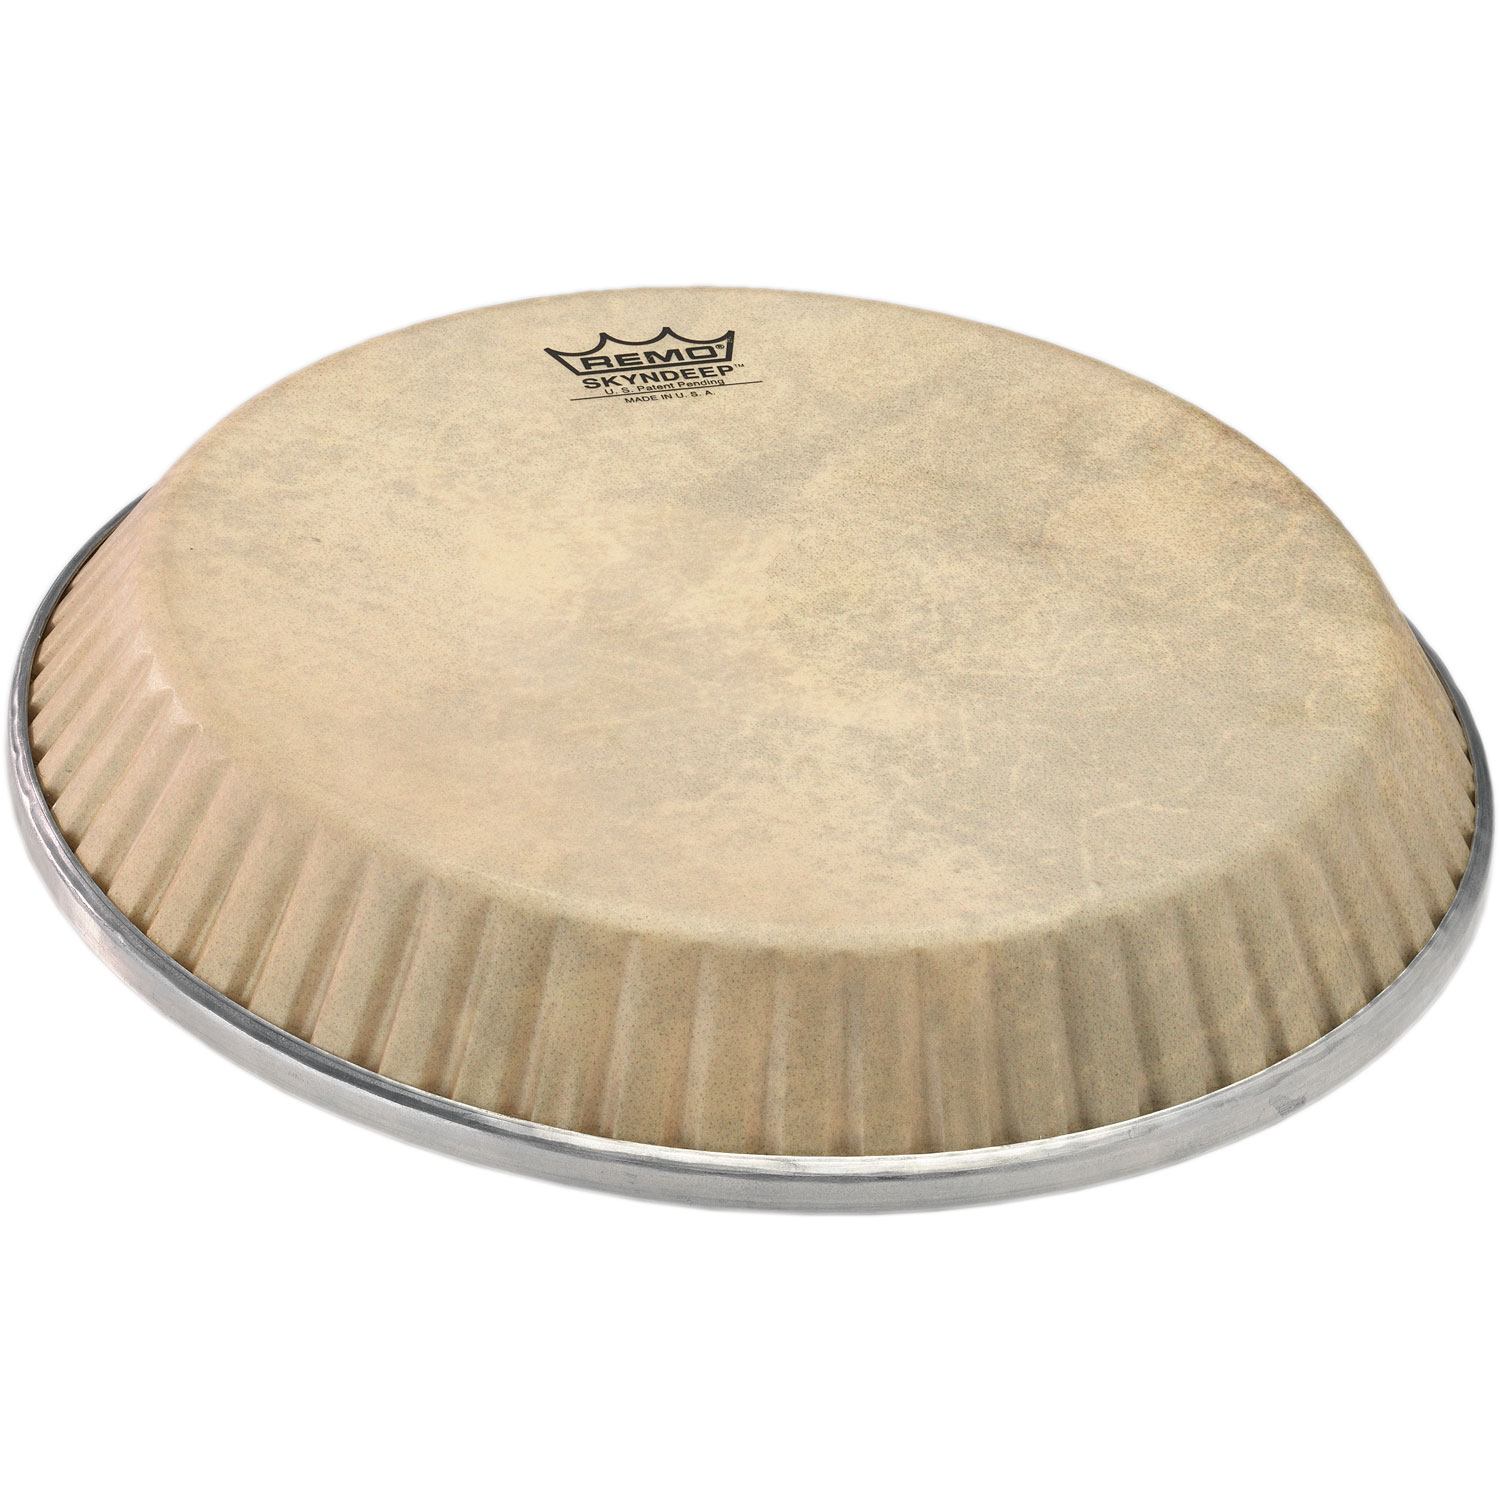 """Remo 12.5"""" Symmetry Skyndeep Conga Drum Head (D3 Collar) with Calfskin Graphic"""